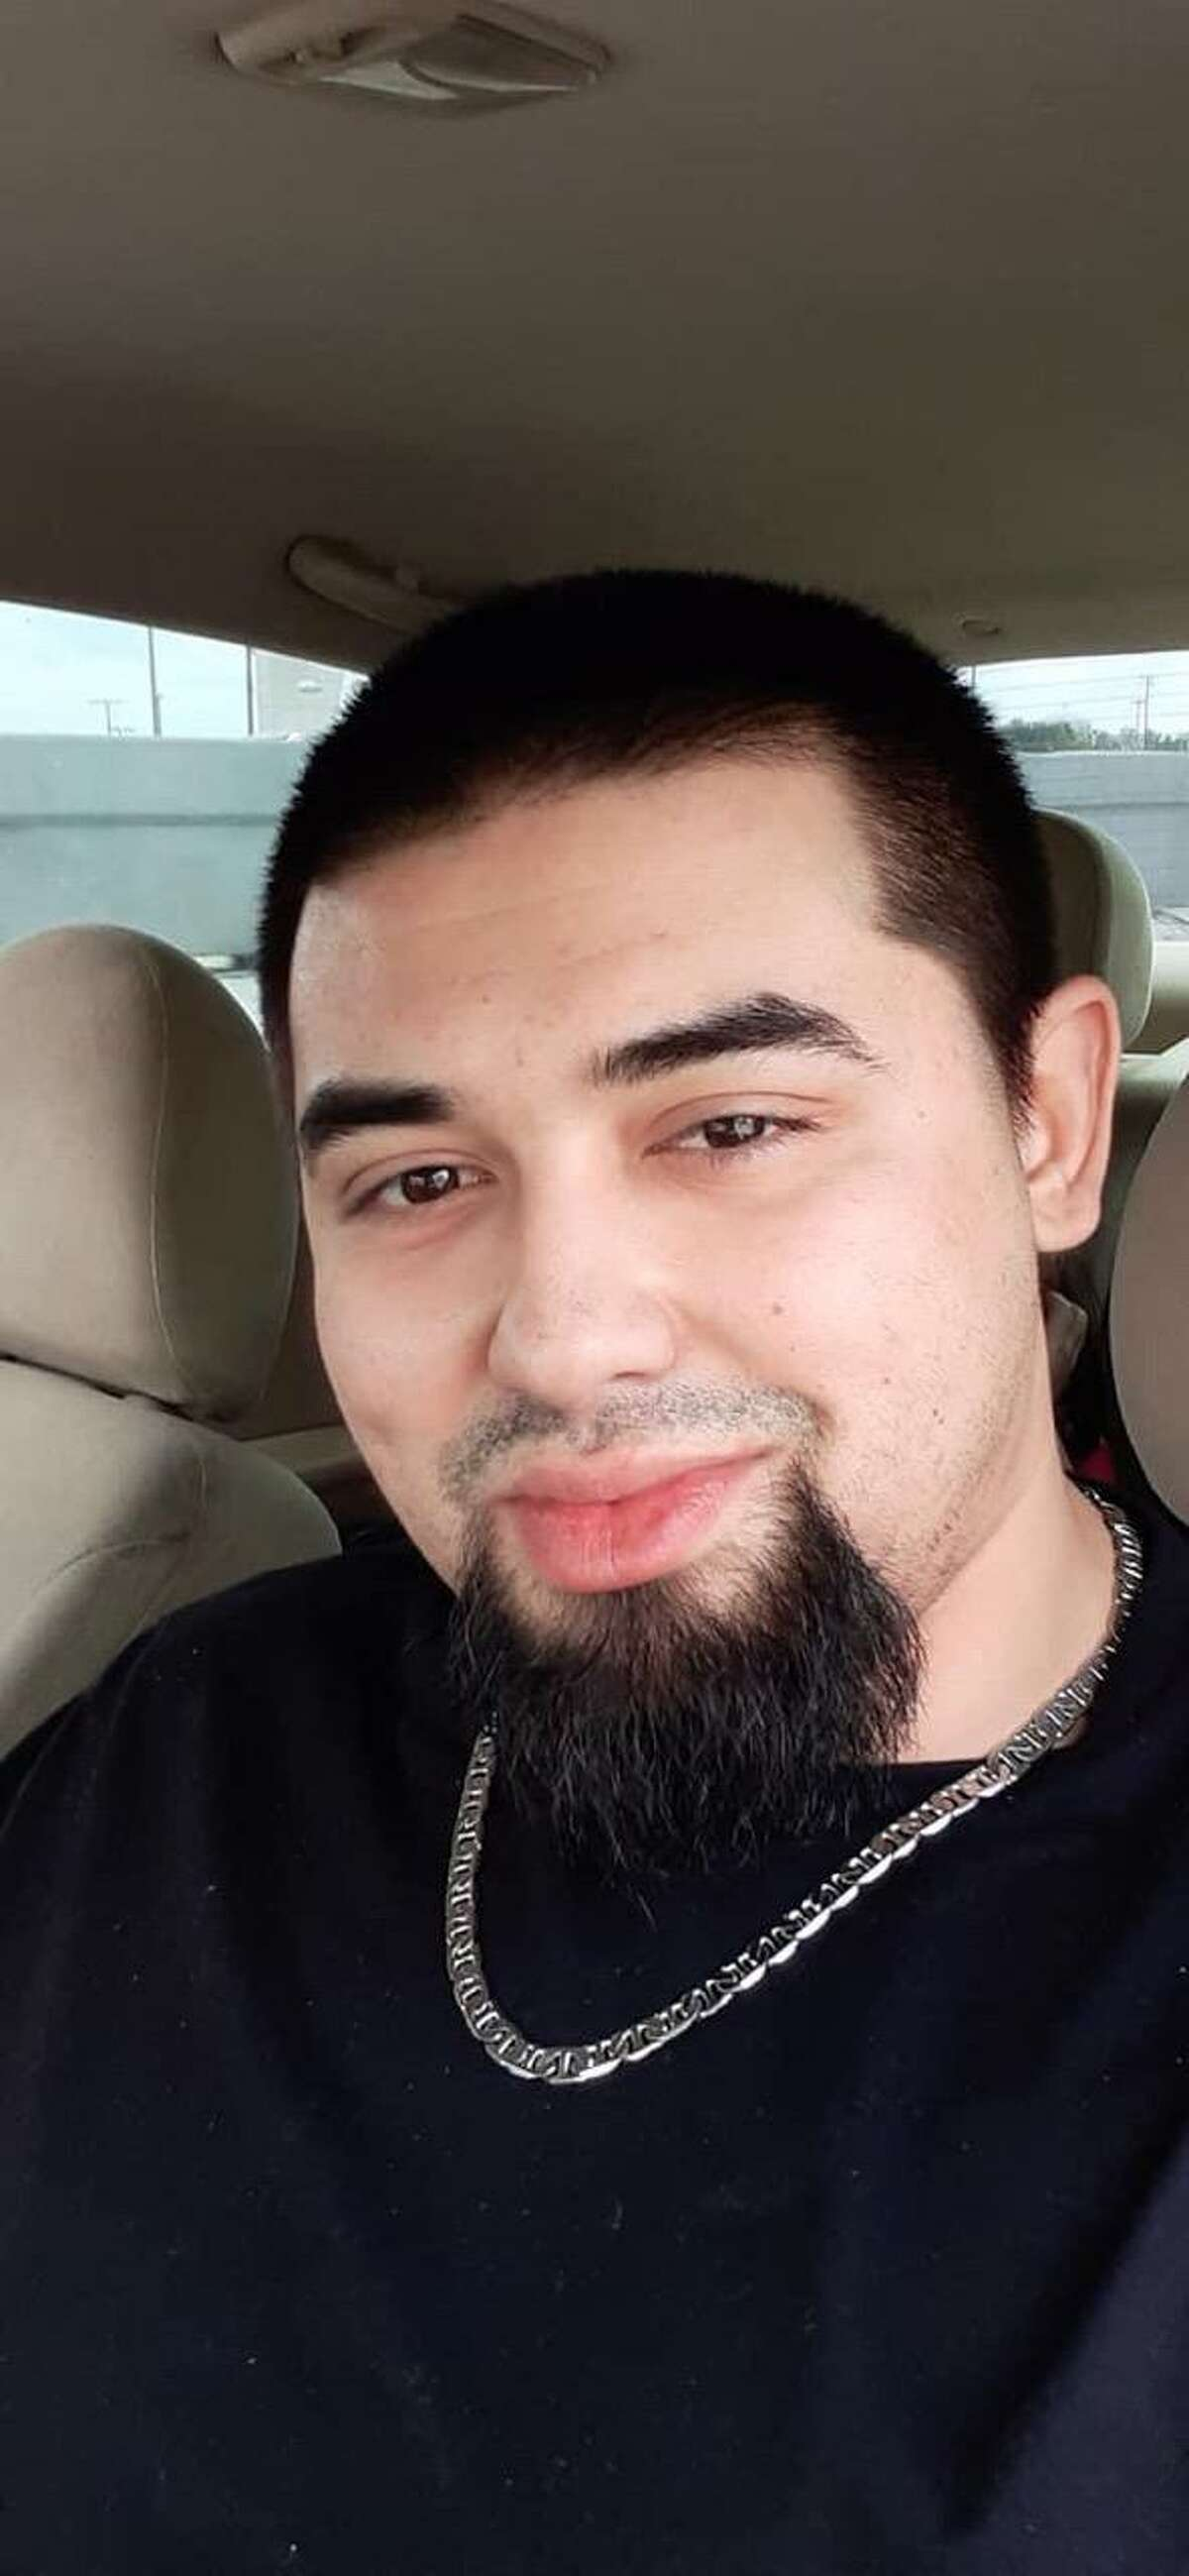 Nicolas Chavez was shot and killed by police April 21, 2020 in the 800 block of Gazin, where police said he threatened officers and neighbors with a weapon. Four of five city police officers who fired shots were dismissed September 10, 2020 for their roles in the shooting death.